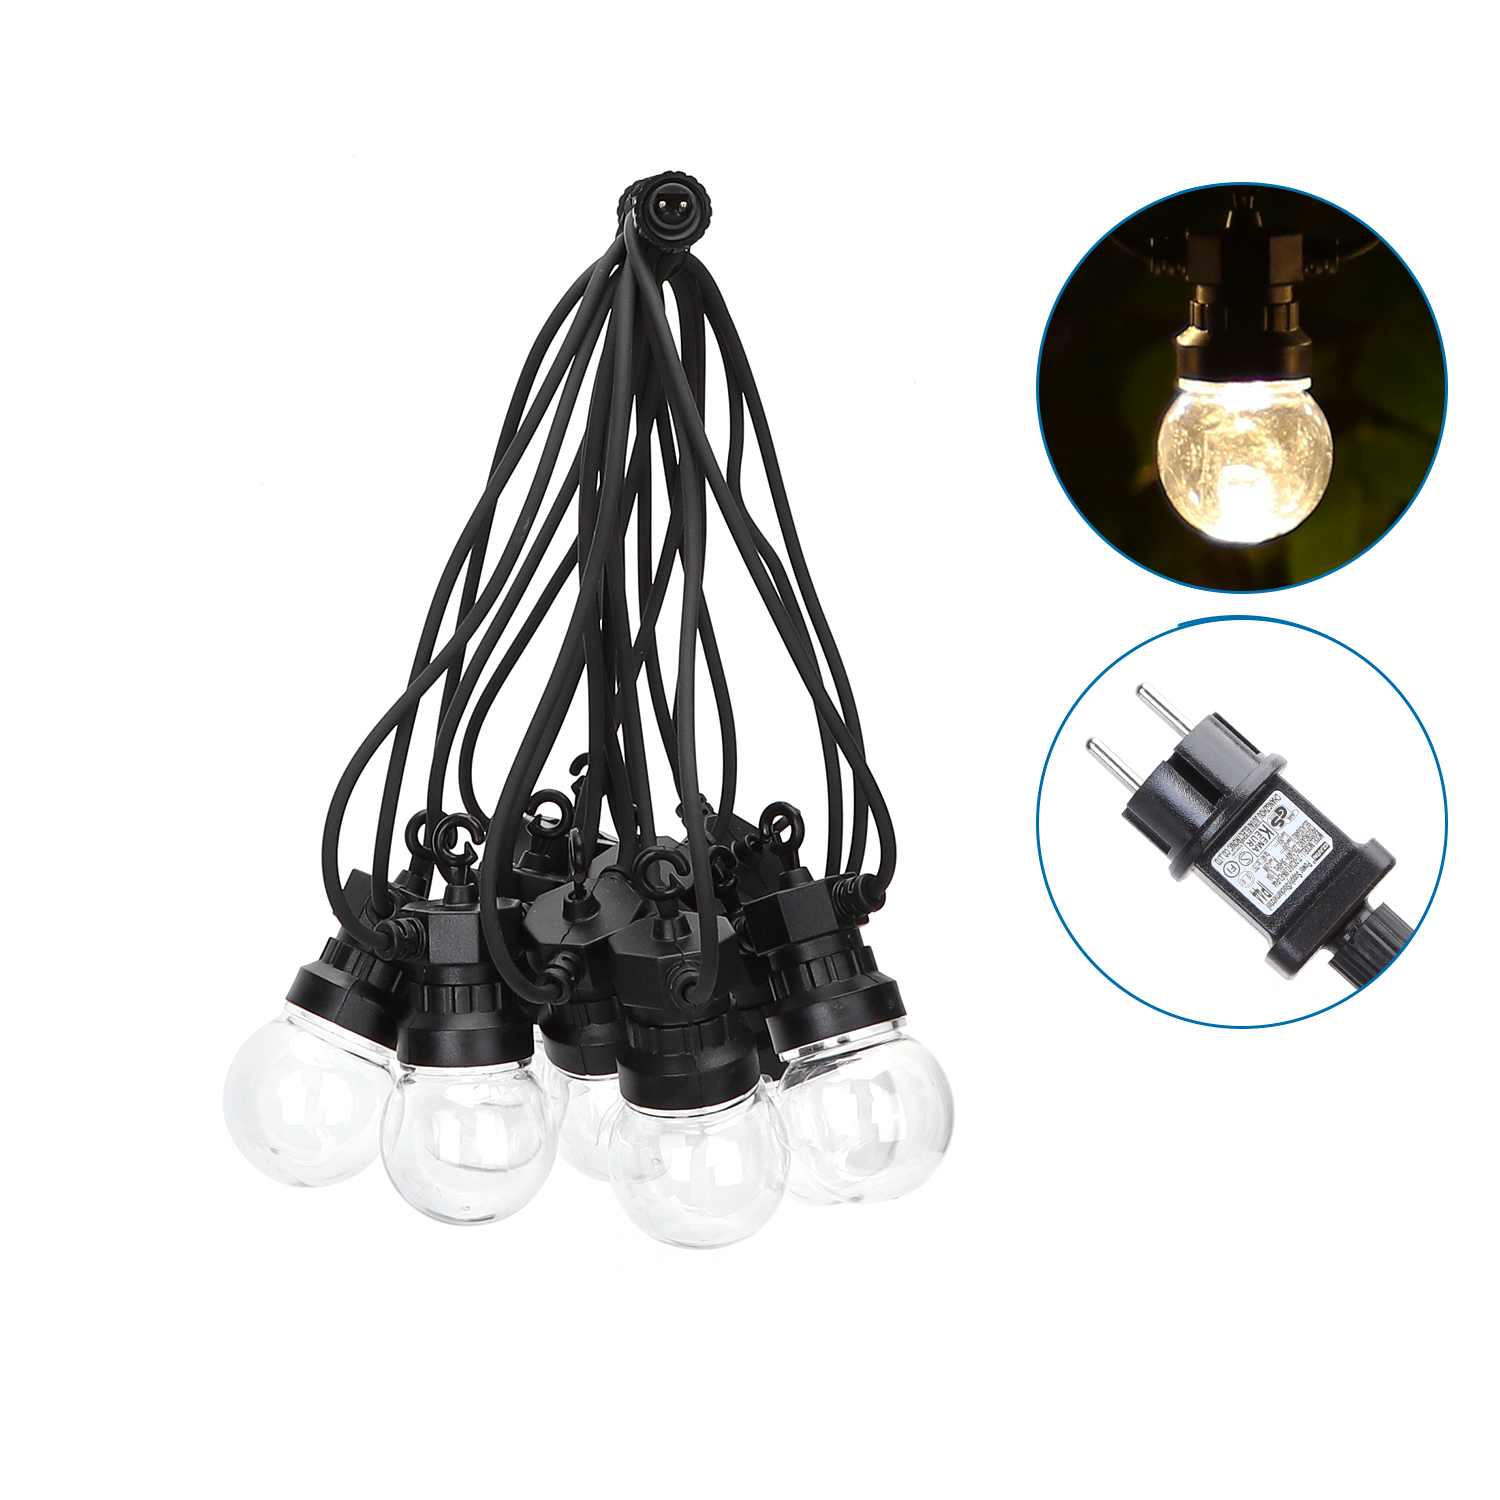 LED String light - feestverlichting - prikkabel inclusief 10x lampen - warm wit - 8 meter